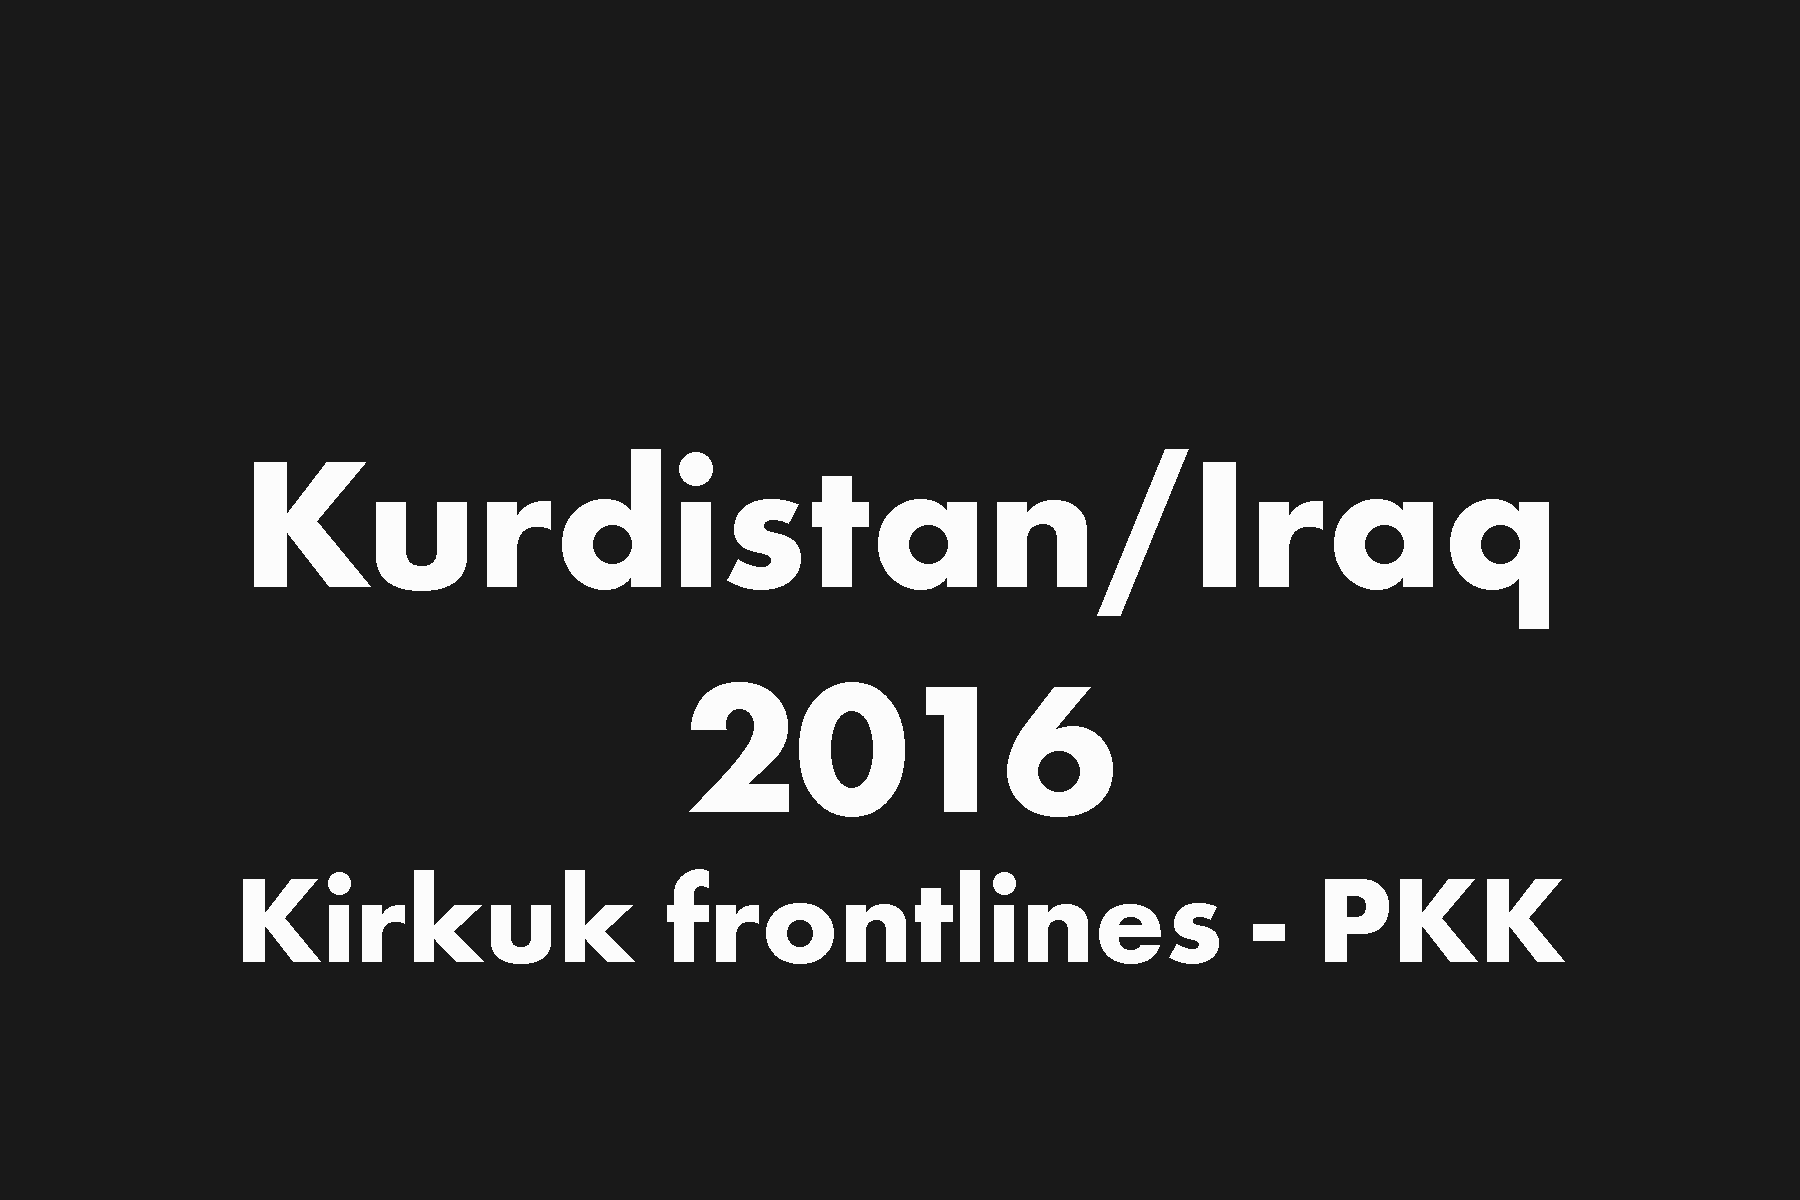 Website-trenner-pkk.png